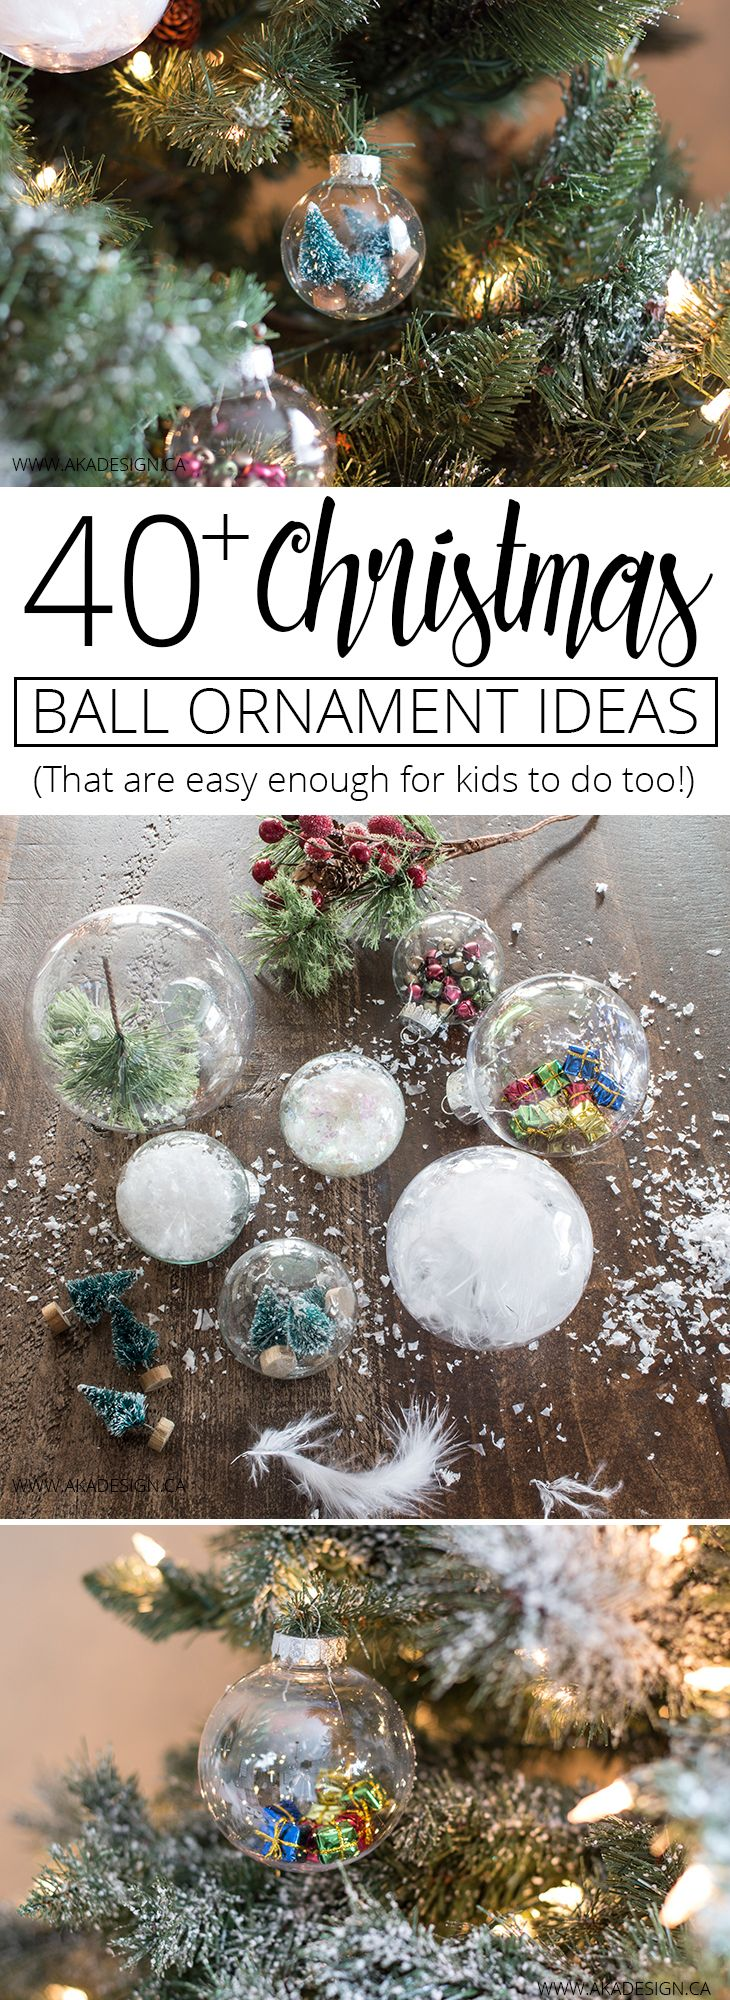 Lawyer christmas ornaments - 40 Christmas Ball Ornament Ideas For You To Try This Year